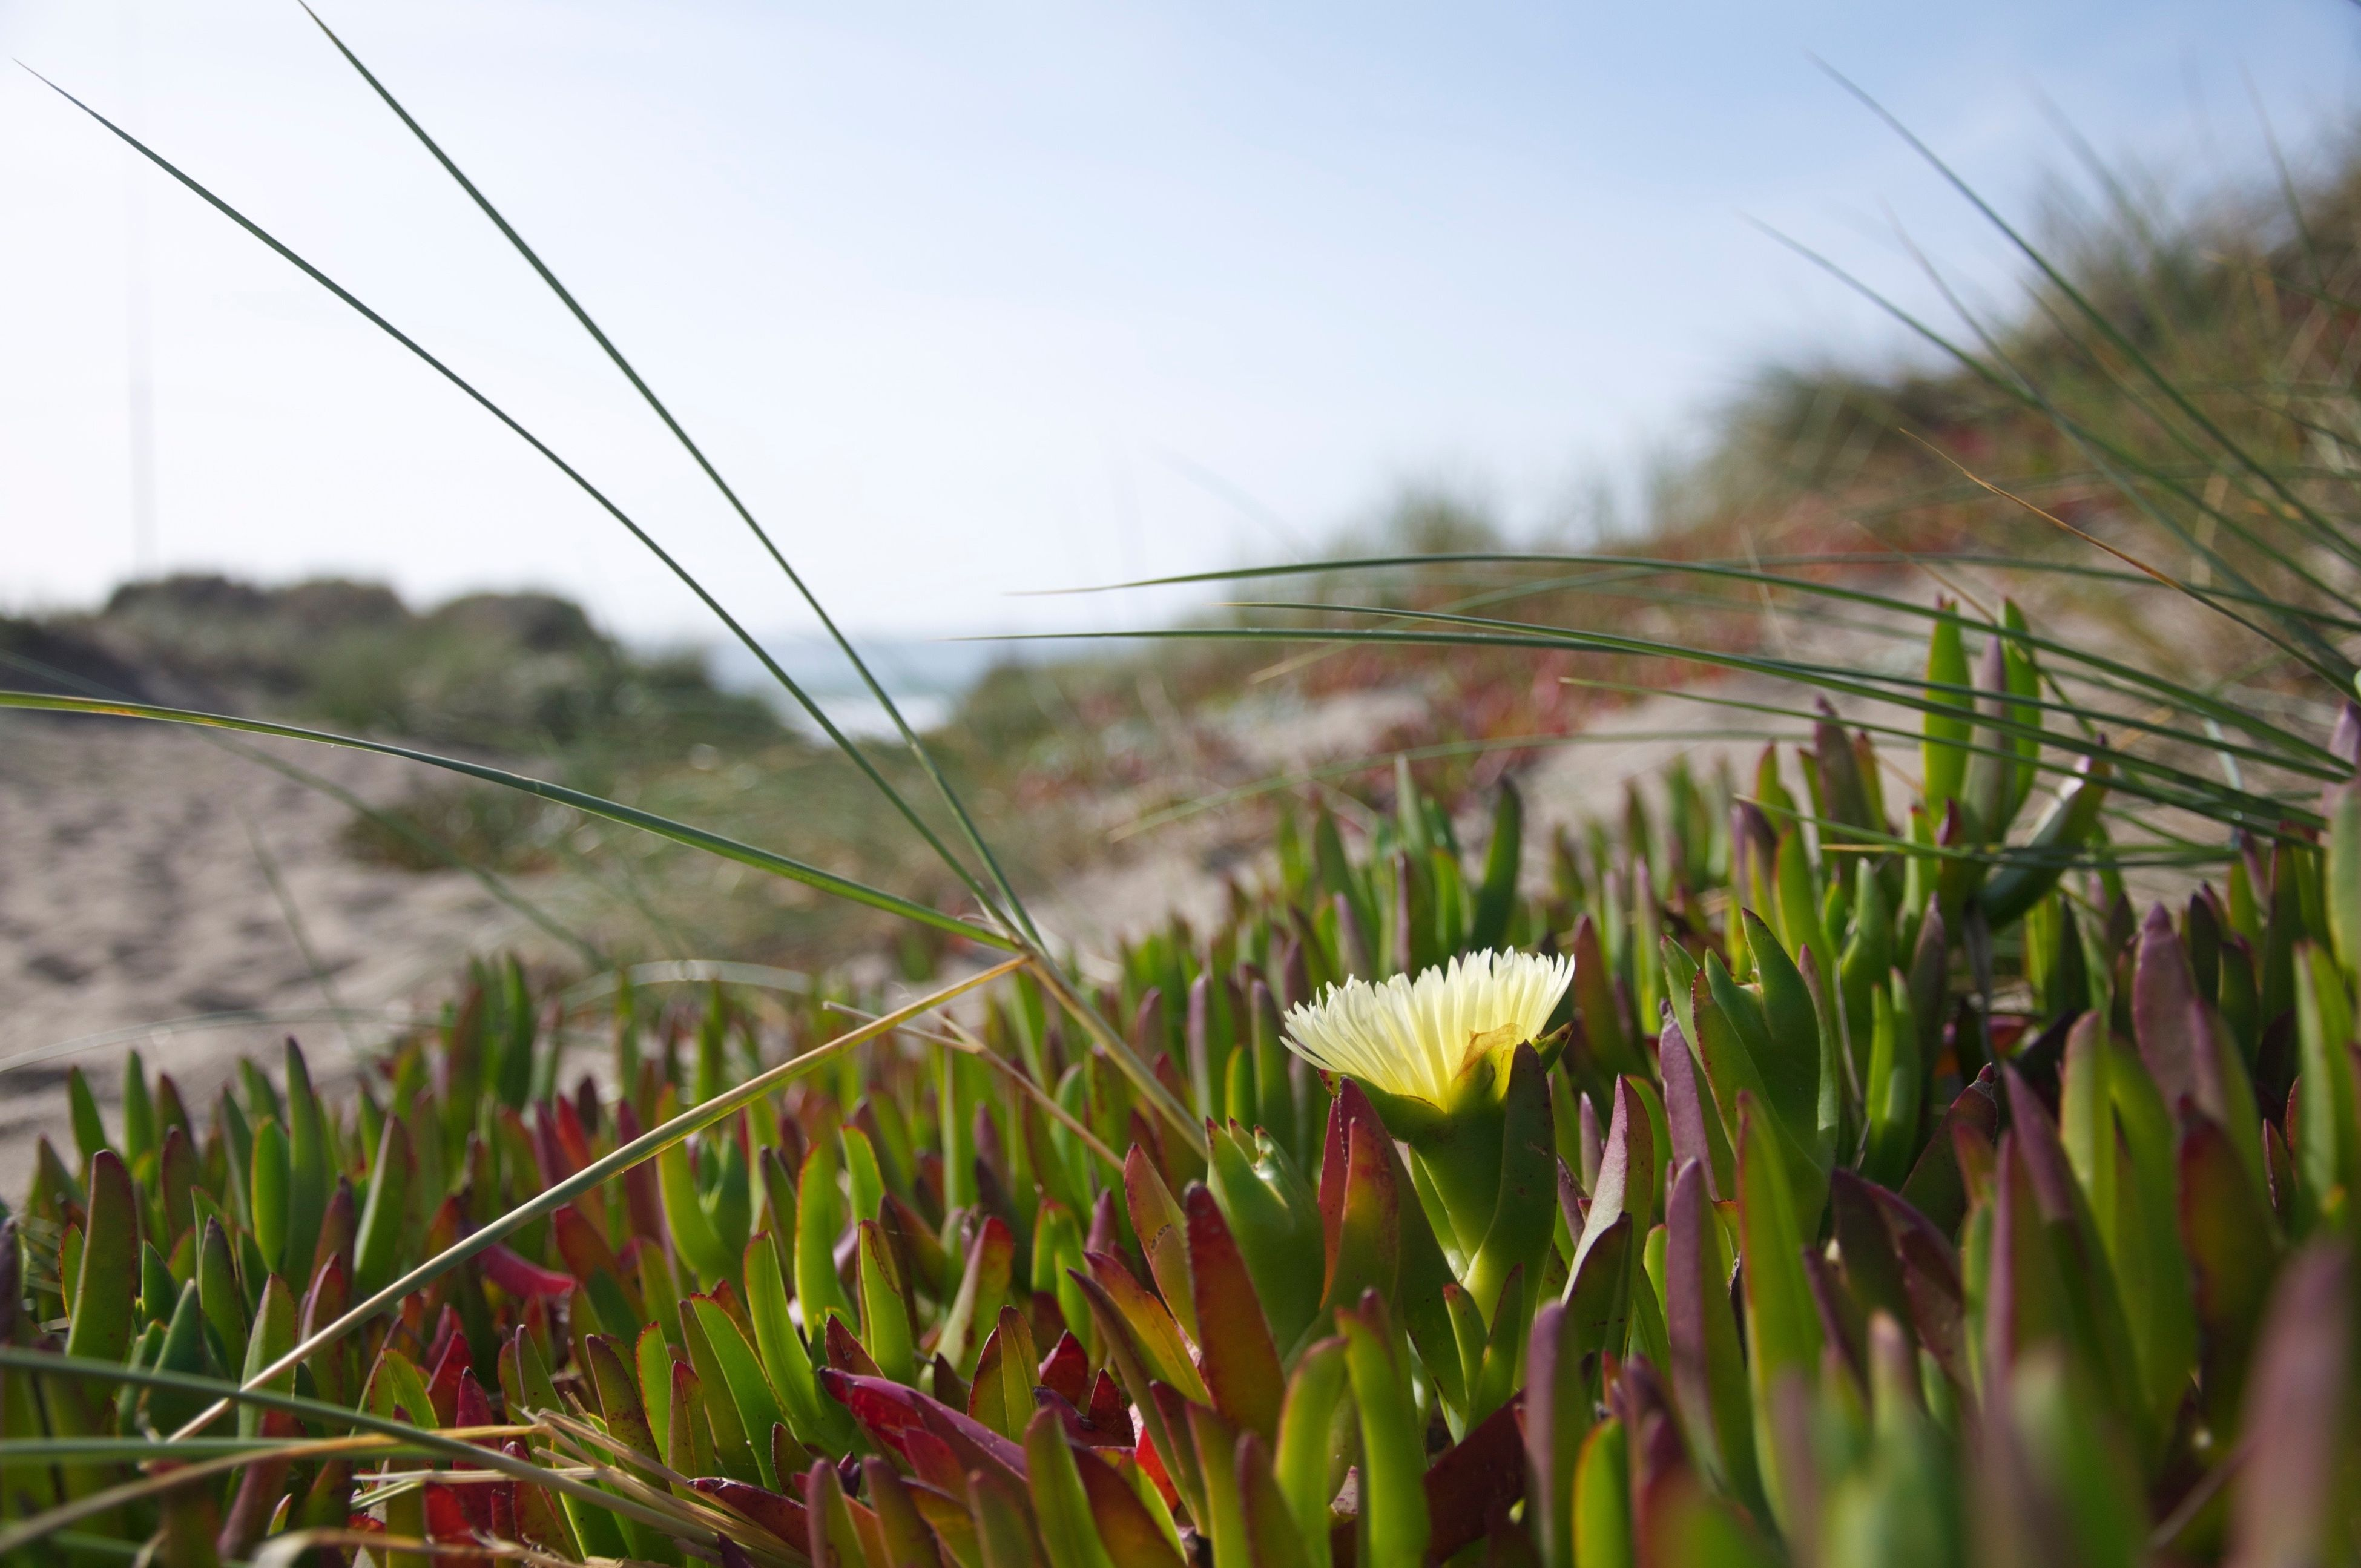 growth, grass, focus on foreground, flower, close-up, field, plant, nature, beauty in nature, freshness, green color, tranquility, fragility, scenics, tranquil scene, wildflower, day, green, surface level, outdoors, blade of grass, uncultivated, springtime, non-urban scene, mountain, remote, no people, growing, botany